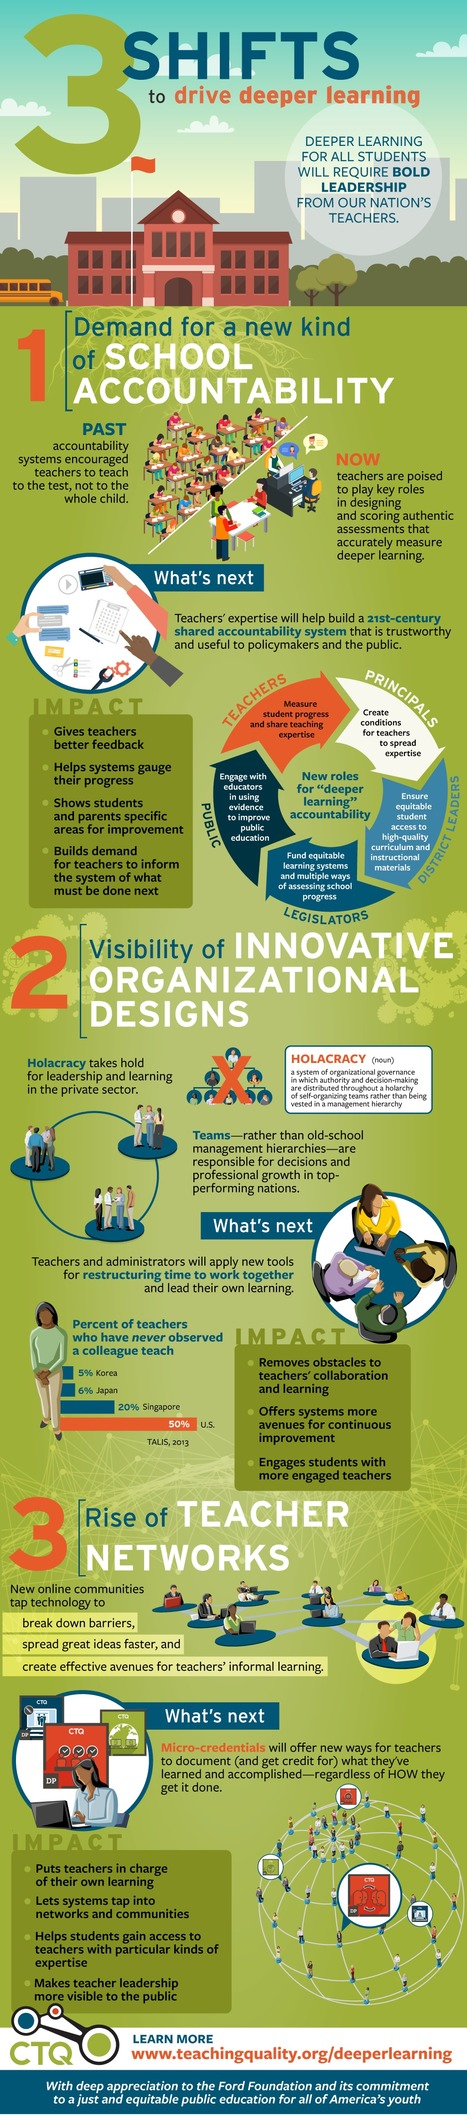 Teacher leadership & deeper learning for all students [#Infographic] | #CTQ #CTQCollab | K-12 Connected Learning | Scoop.it